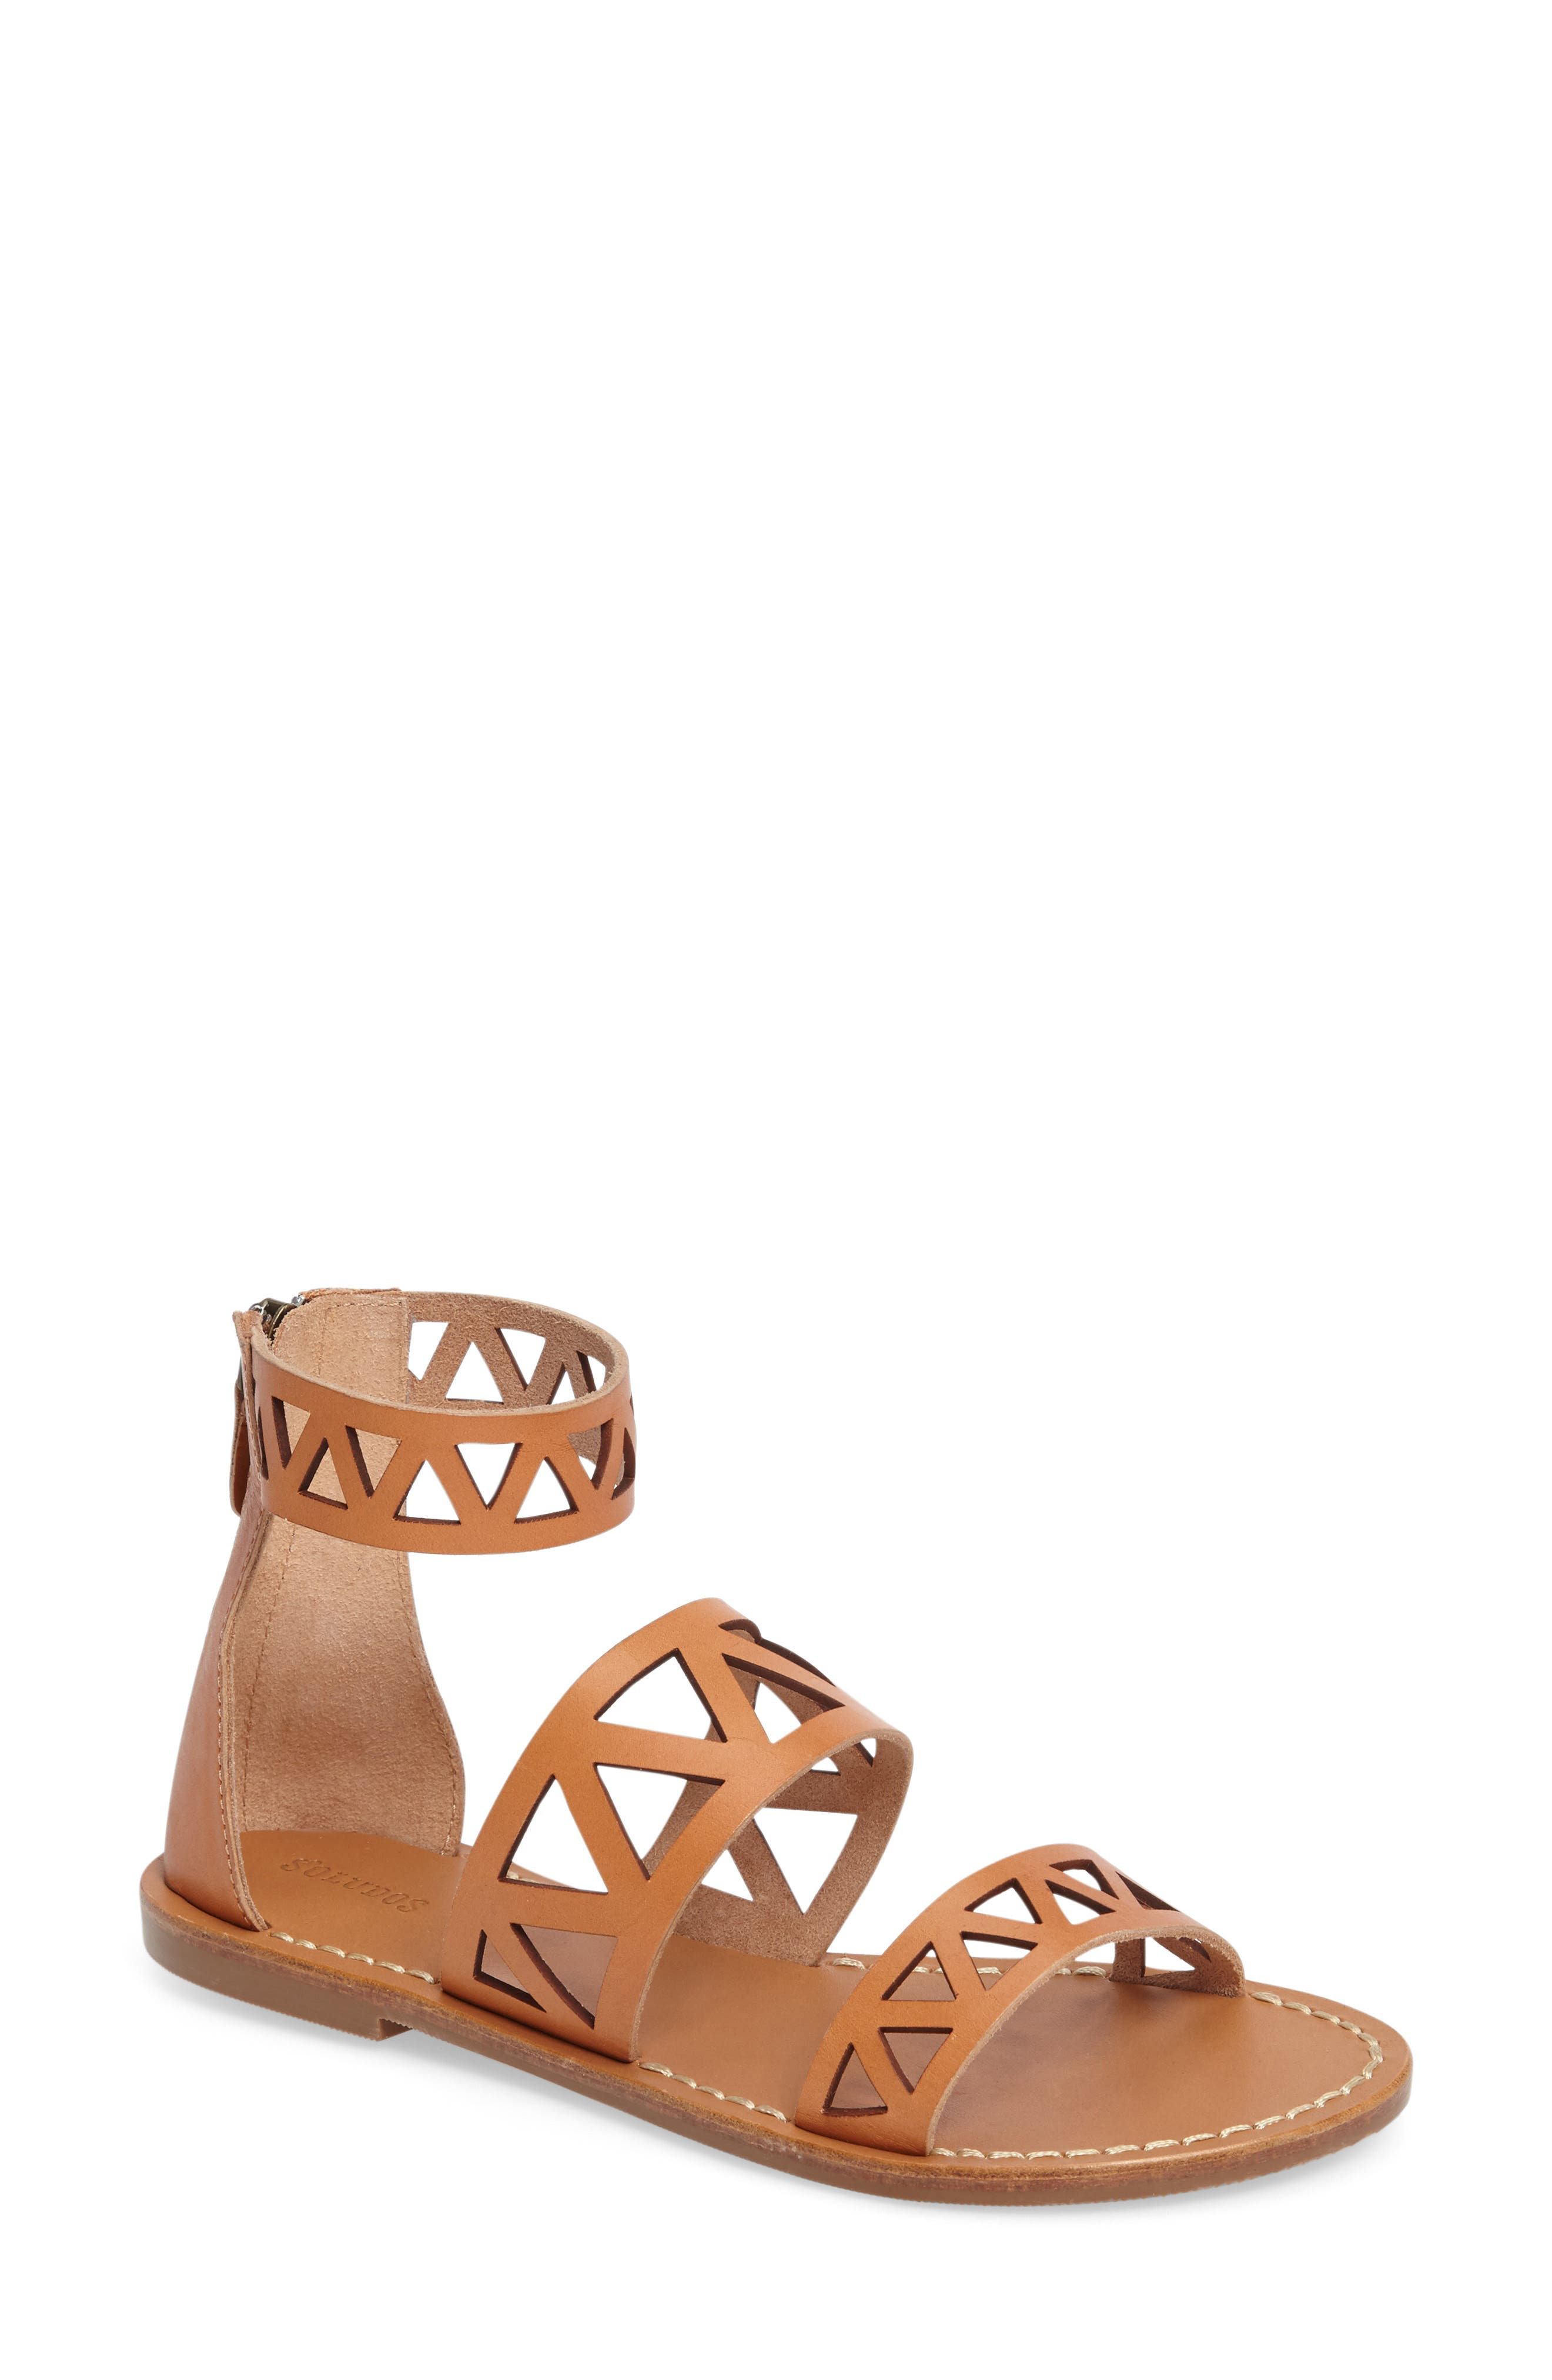 Ankle Cuff Sandal,                         Main,                         color, 200